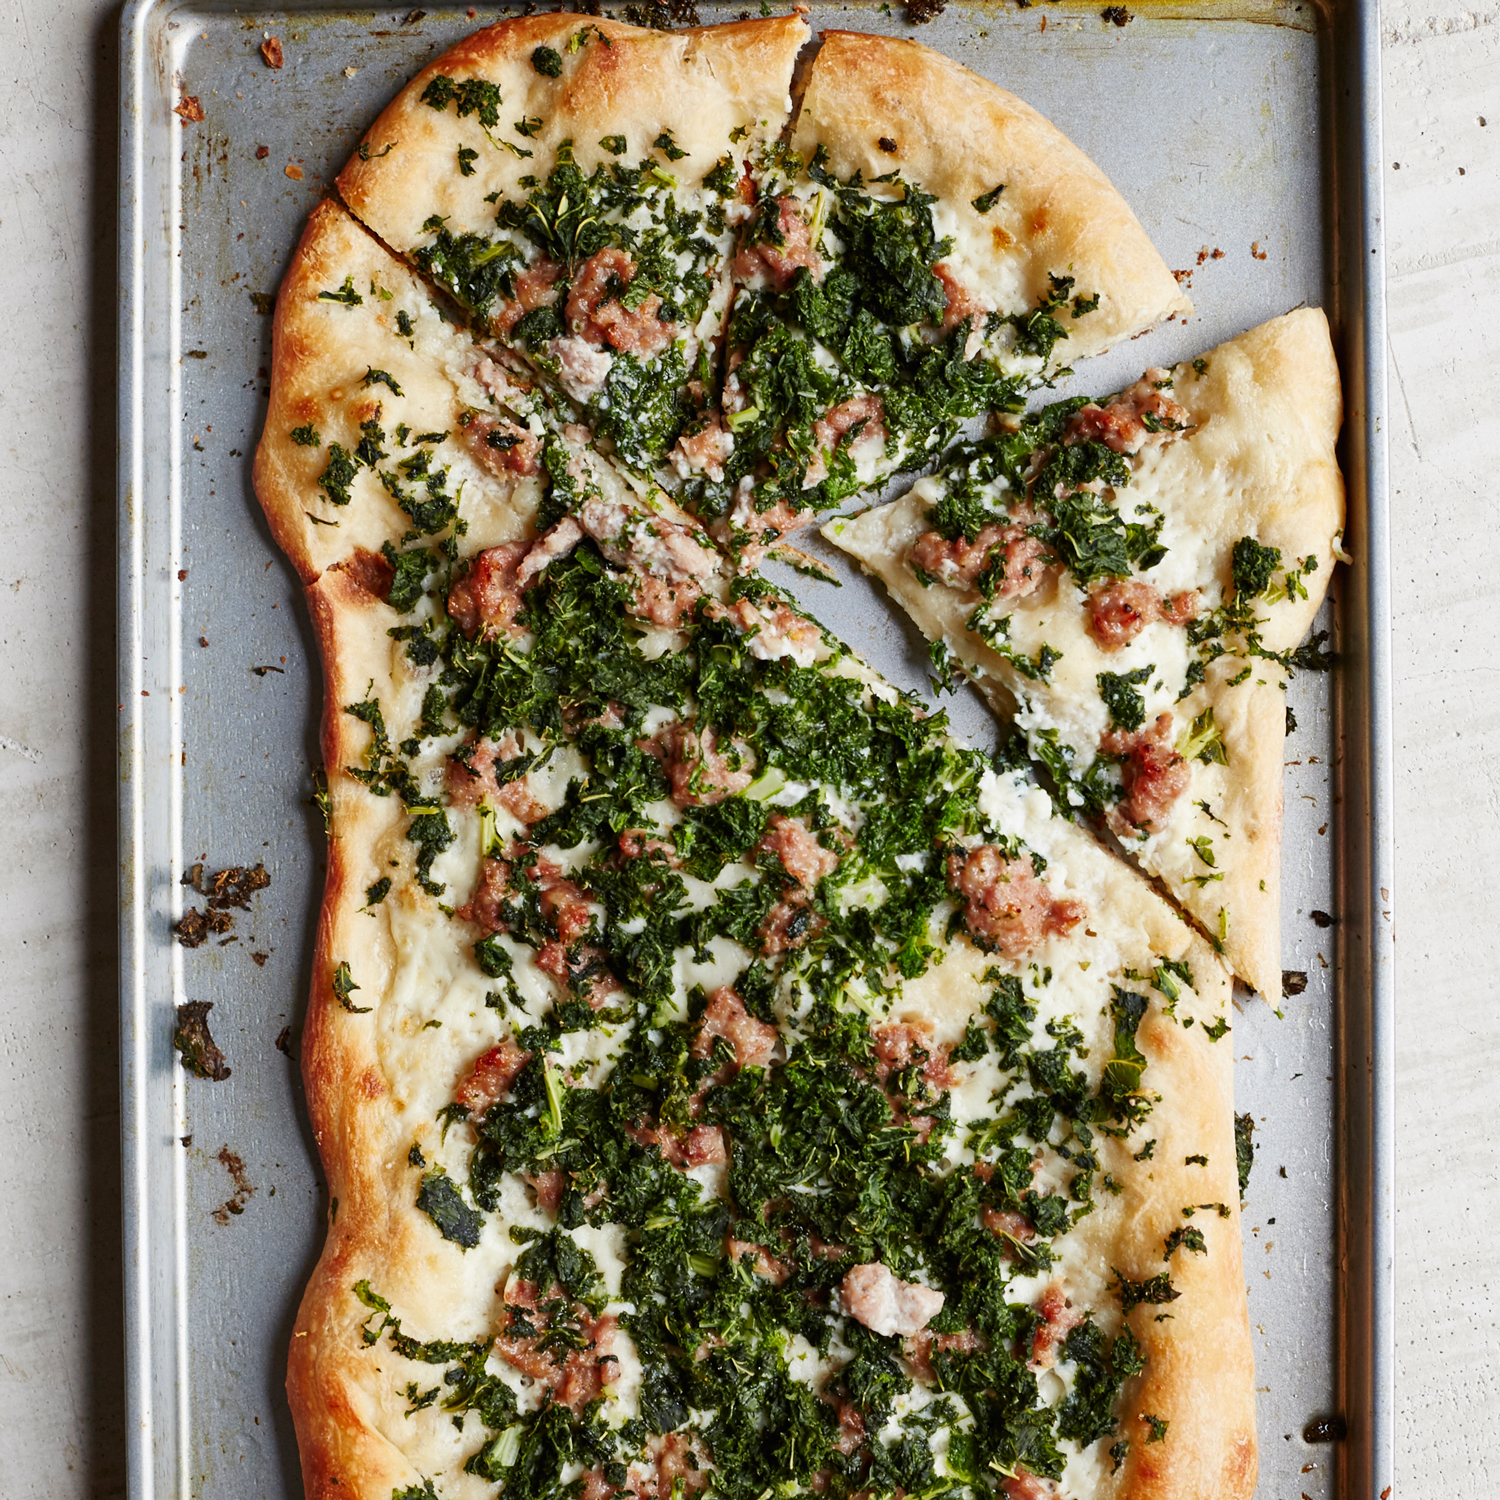 Kale and Sausage Pizza